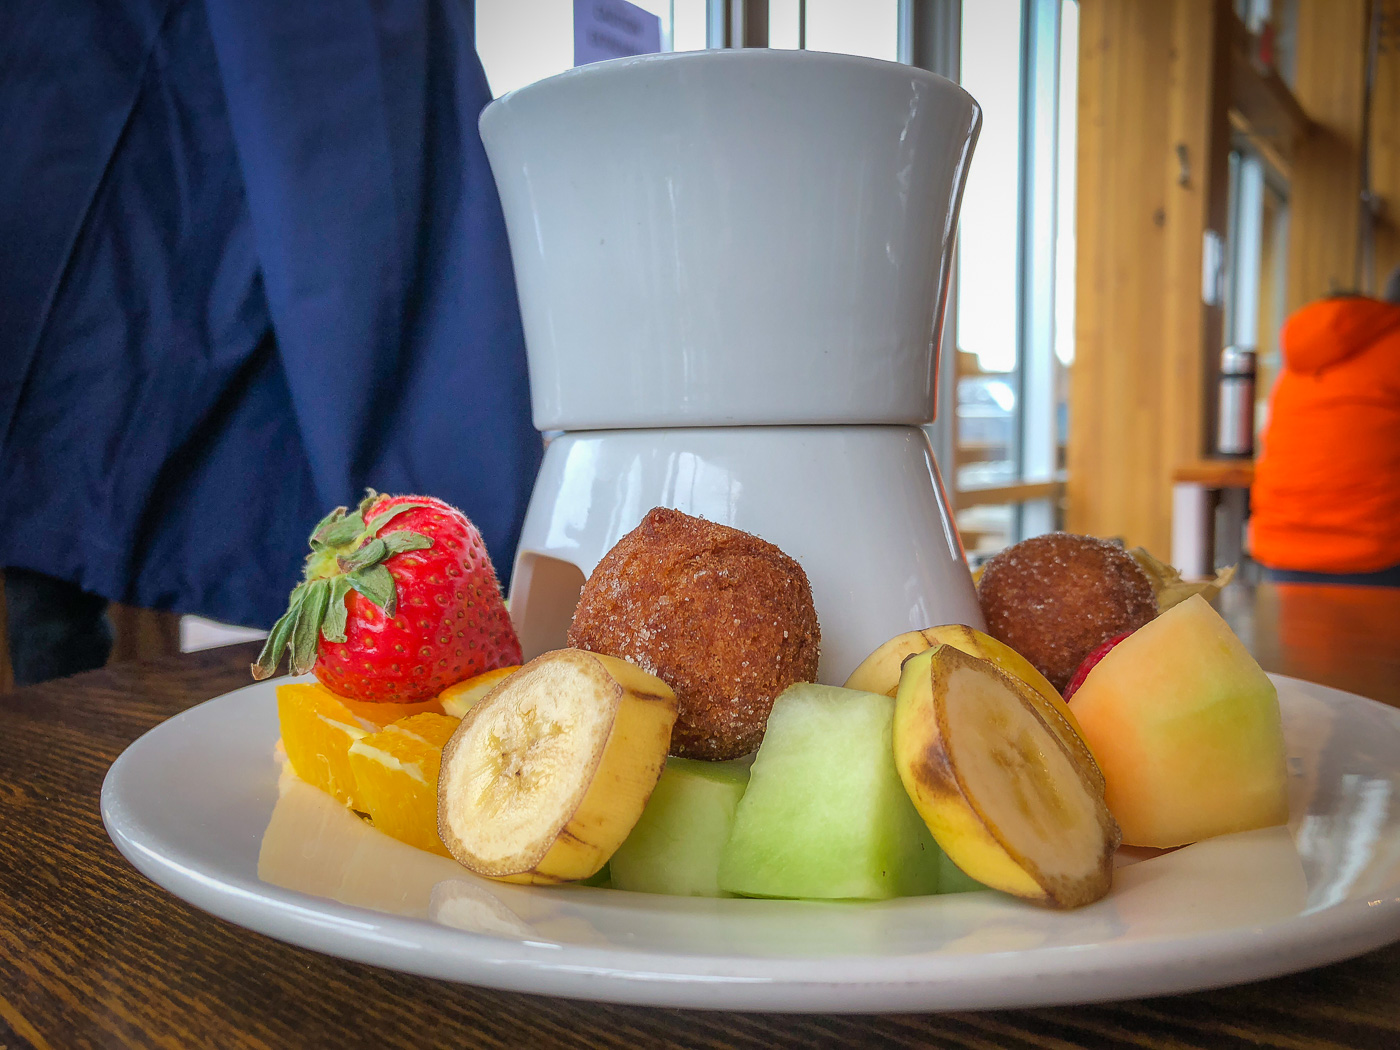 Side shot of a small pot of chocolate fondue surrounded by banana slices, berries, and melon